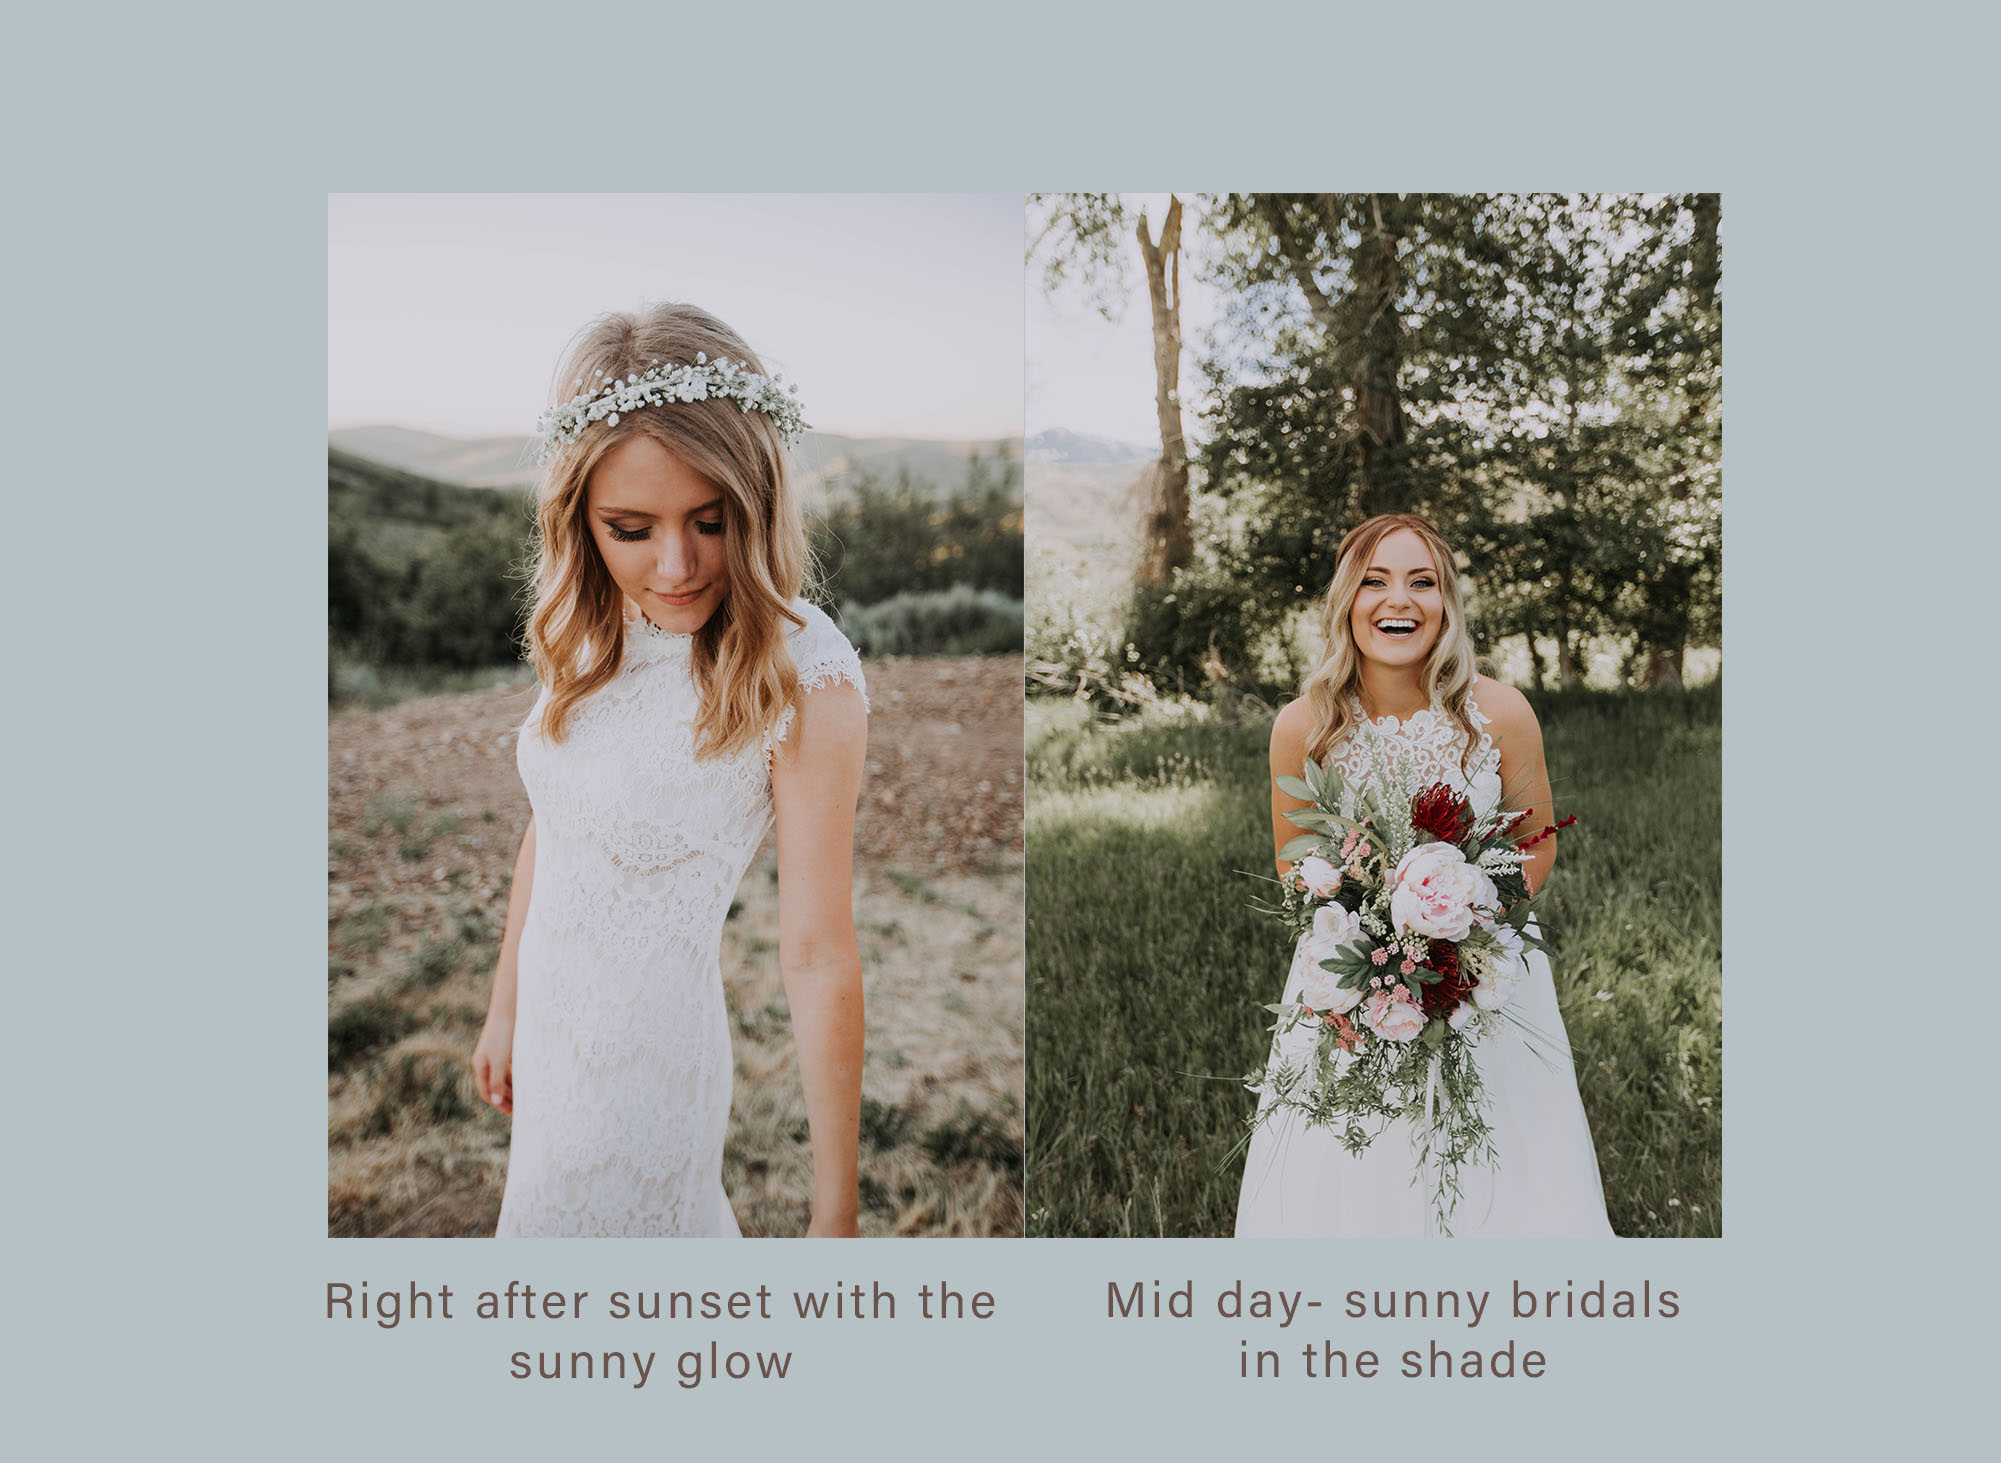 Here is a good example of 2 situations where lighting is beautiful and perfectly planned - Whether its in the shade or with golden light, planning for this made it much easier to capture beautiful photos in perfect light.